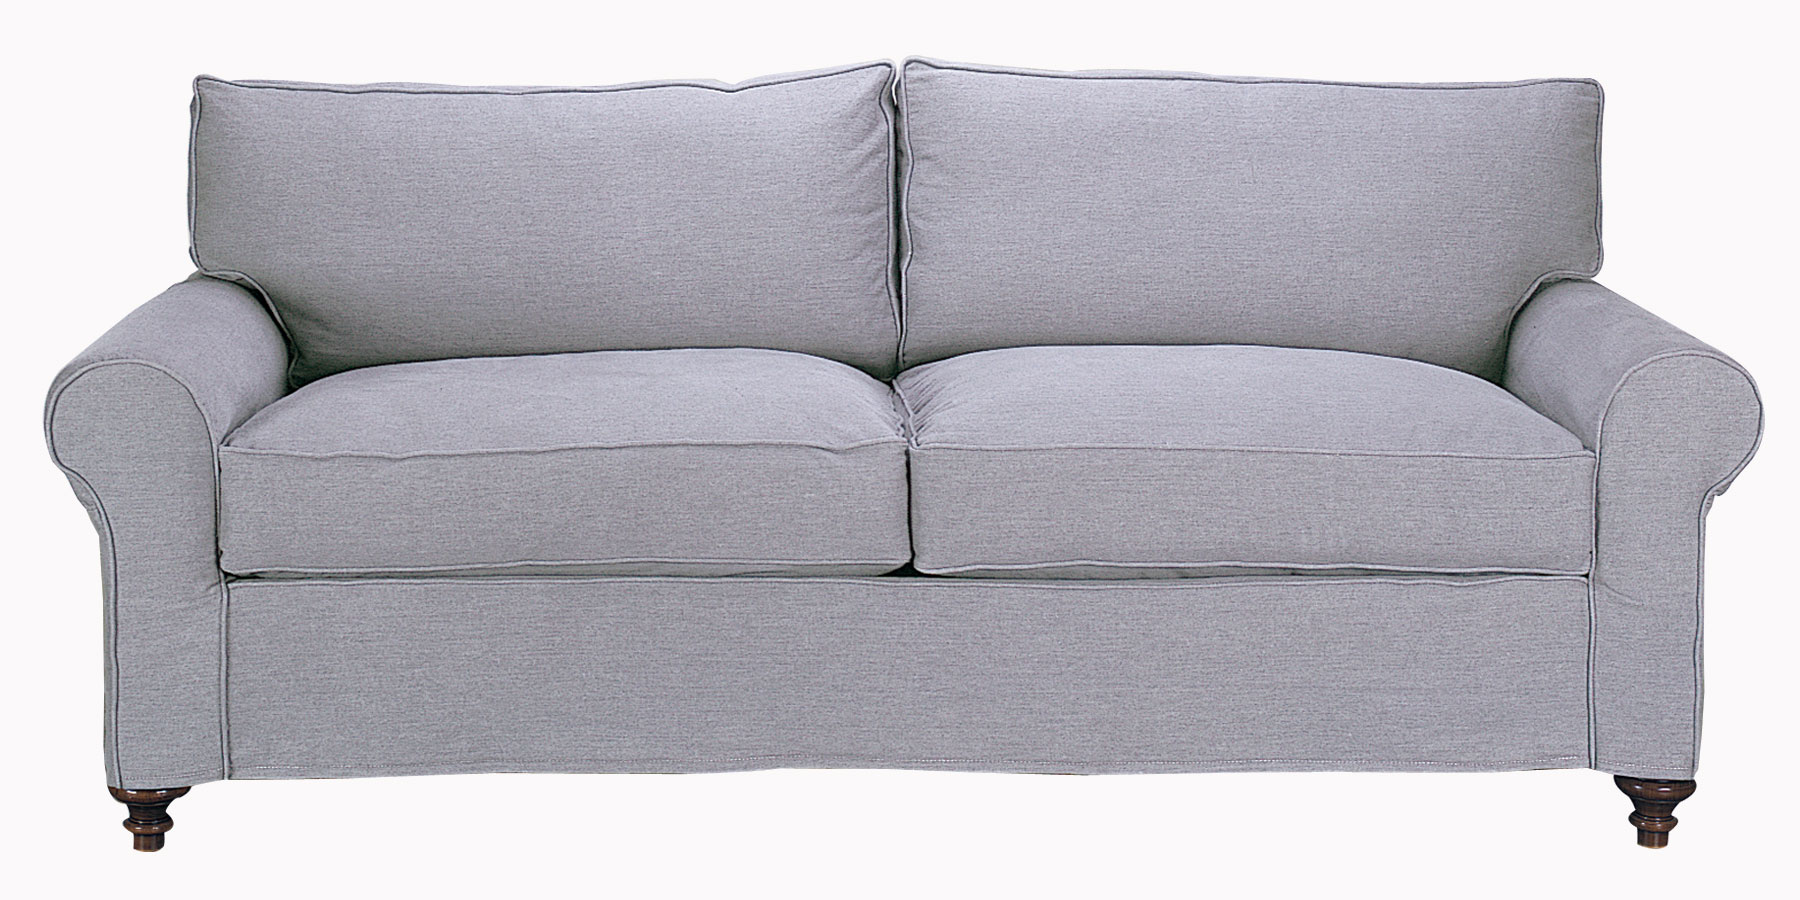 Colby Slipcovered Sofa Collection Slipcovered Furniture